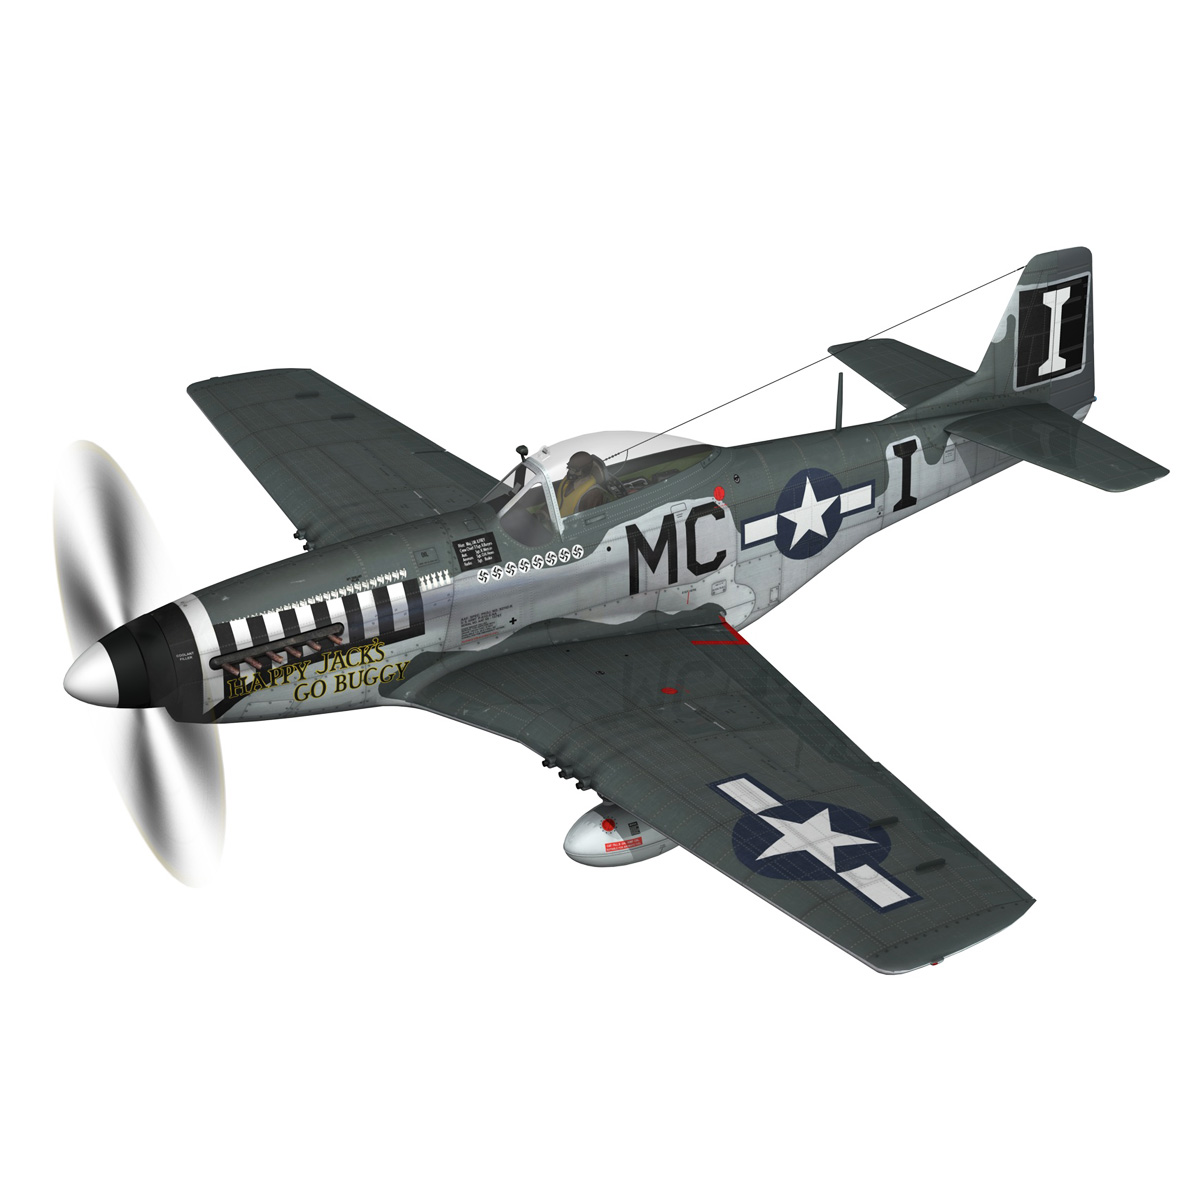 north american p-51 mustang – happy jacks go buggy 3d model fbx c4d lwo obj 280362